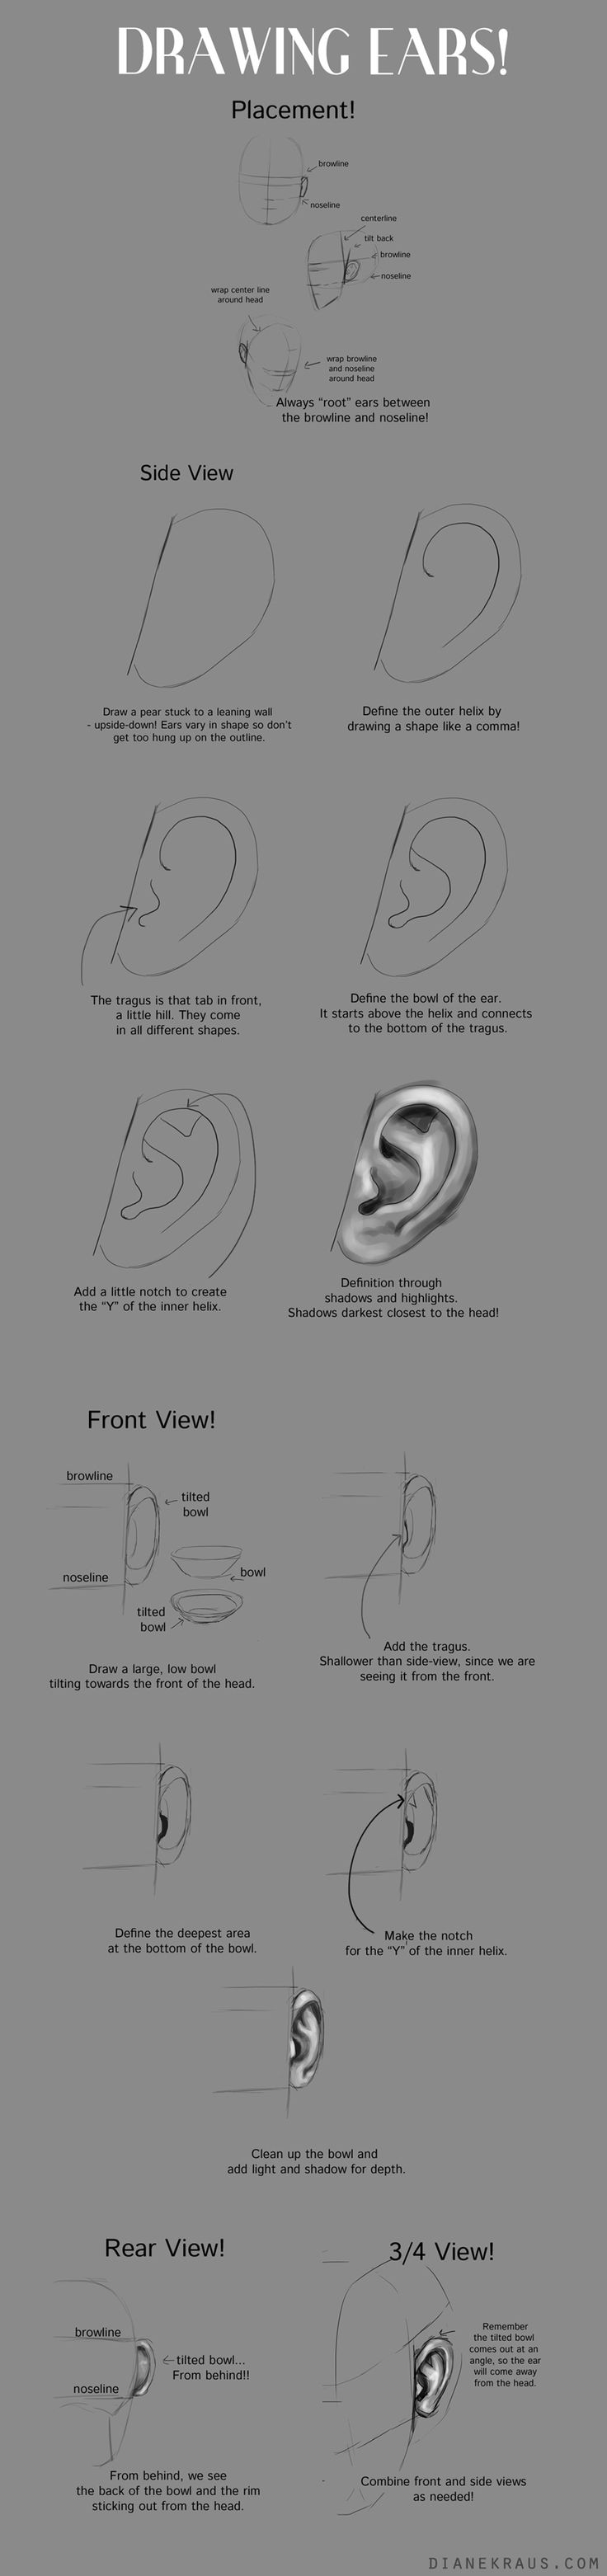 10 best ear anatomy bible images on pinterest drawing techniques drawing ears ccuart Gallery